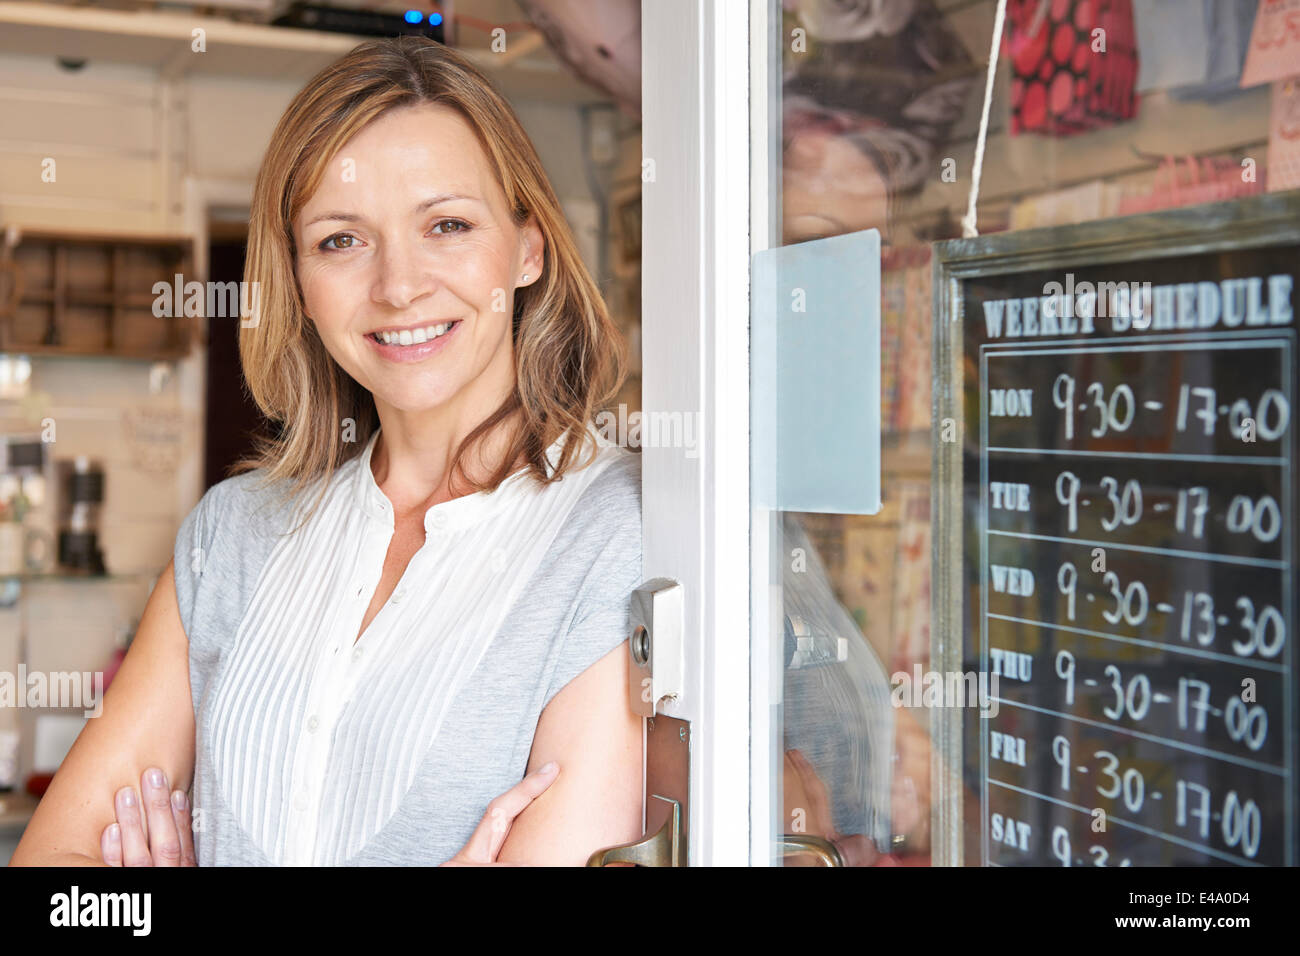 Owner Of Gift Shop Standing In Doorway - Stock Image